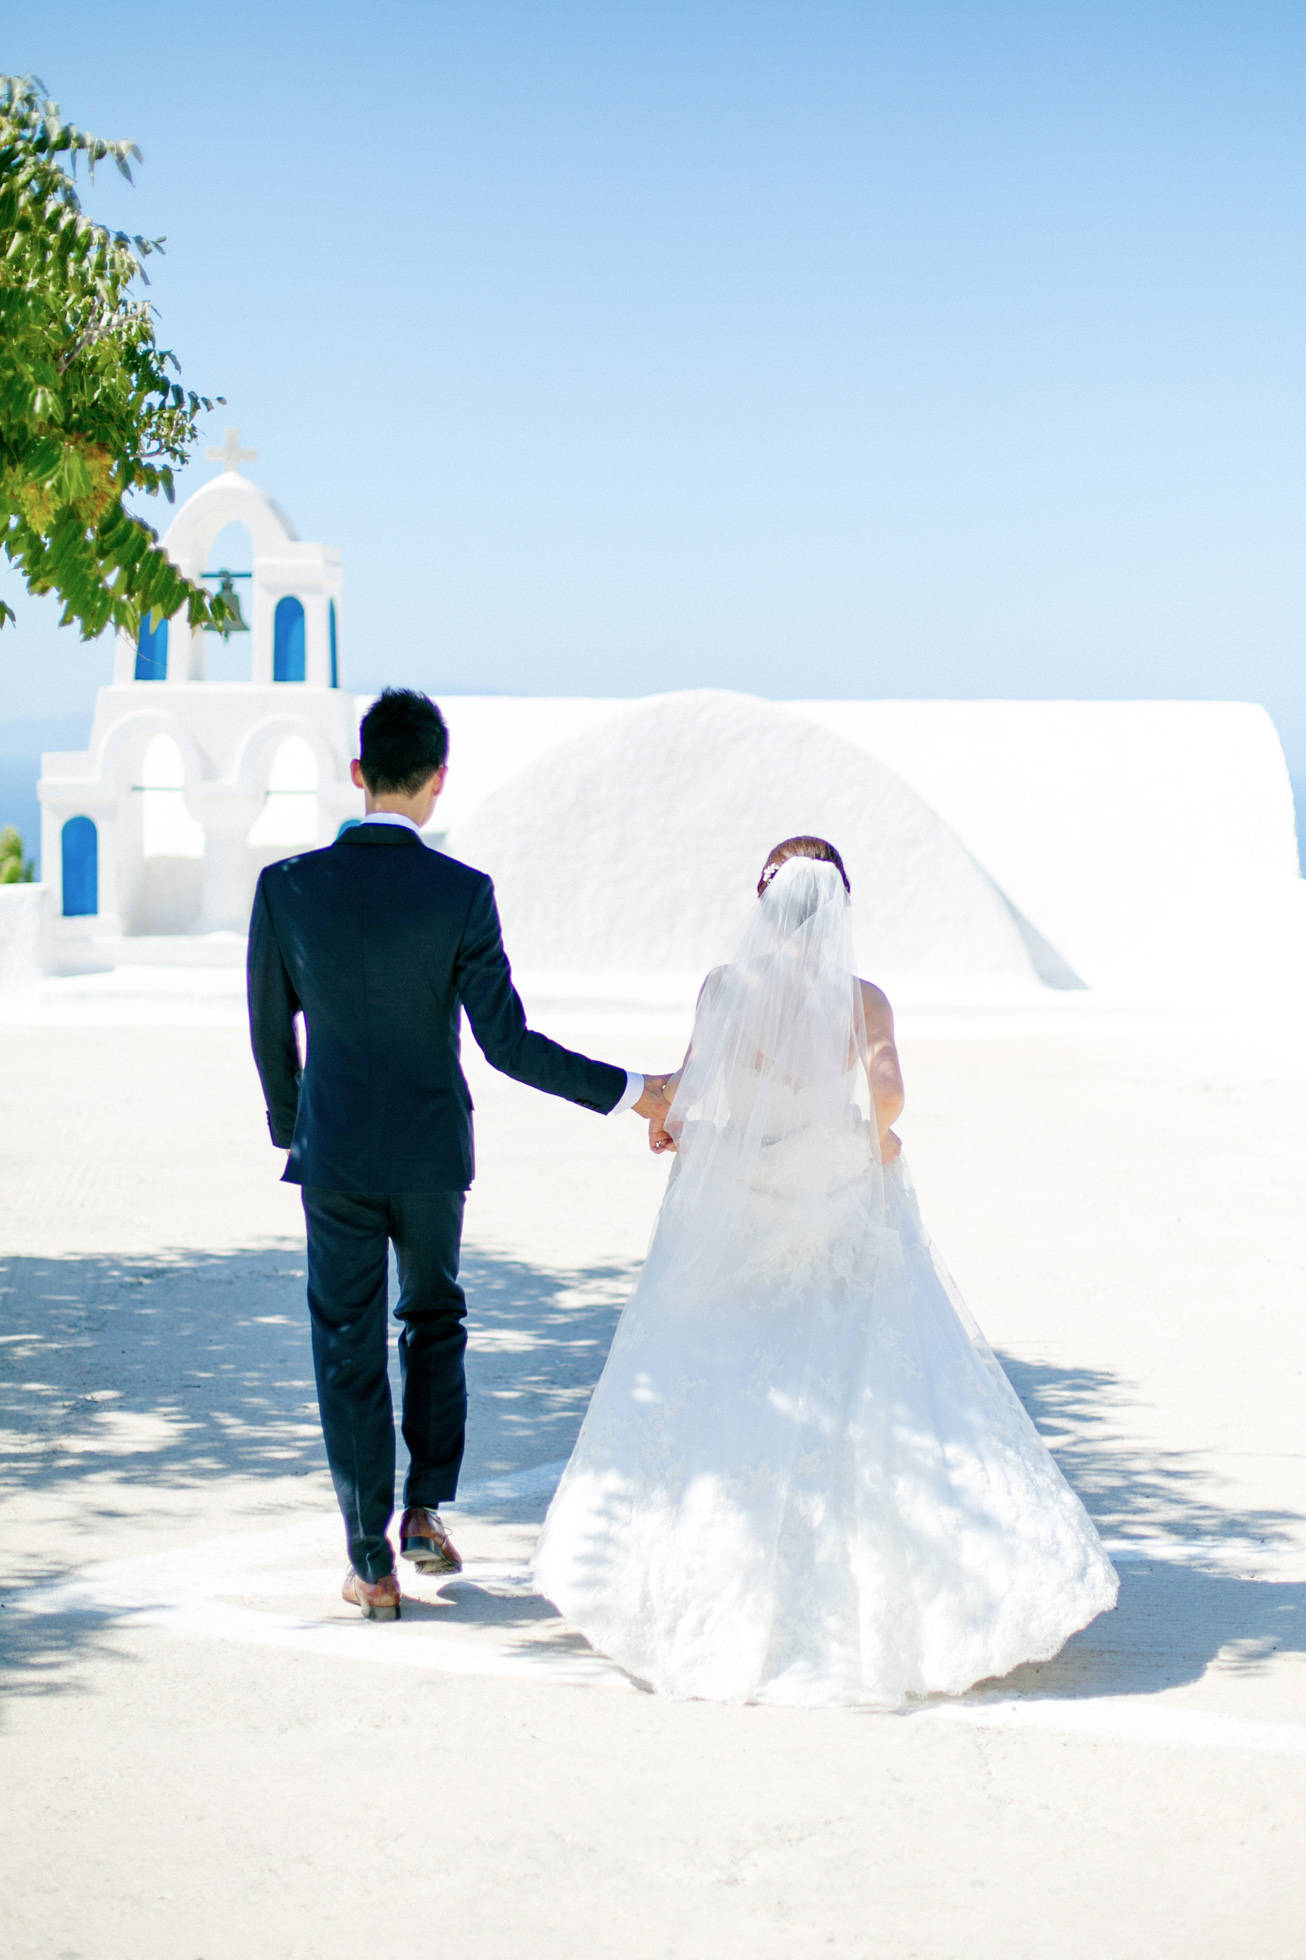 Professional Santorini wedding day photoshoot, groom and bride are walking with the picturesque background of Oia, Santorini church and clear blue skies.